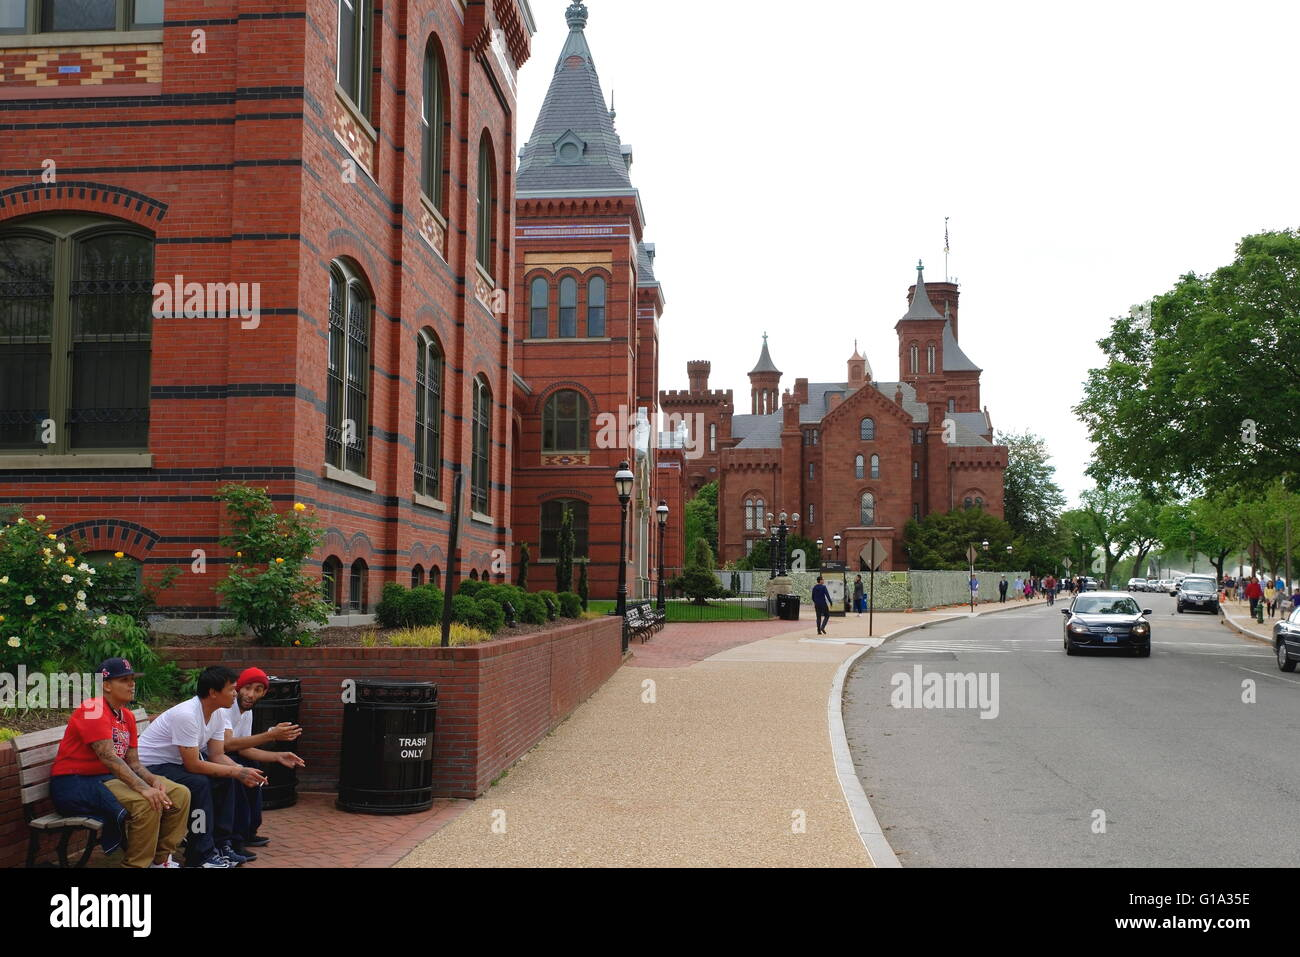 Street View of Arts and Industries Building, Smithsonian Institution - Stock Image